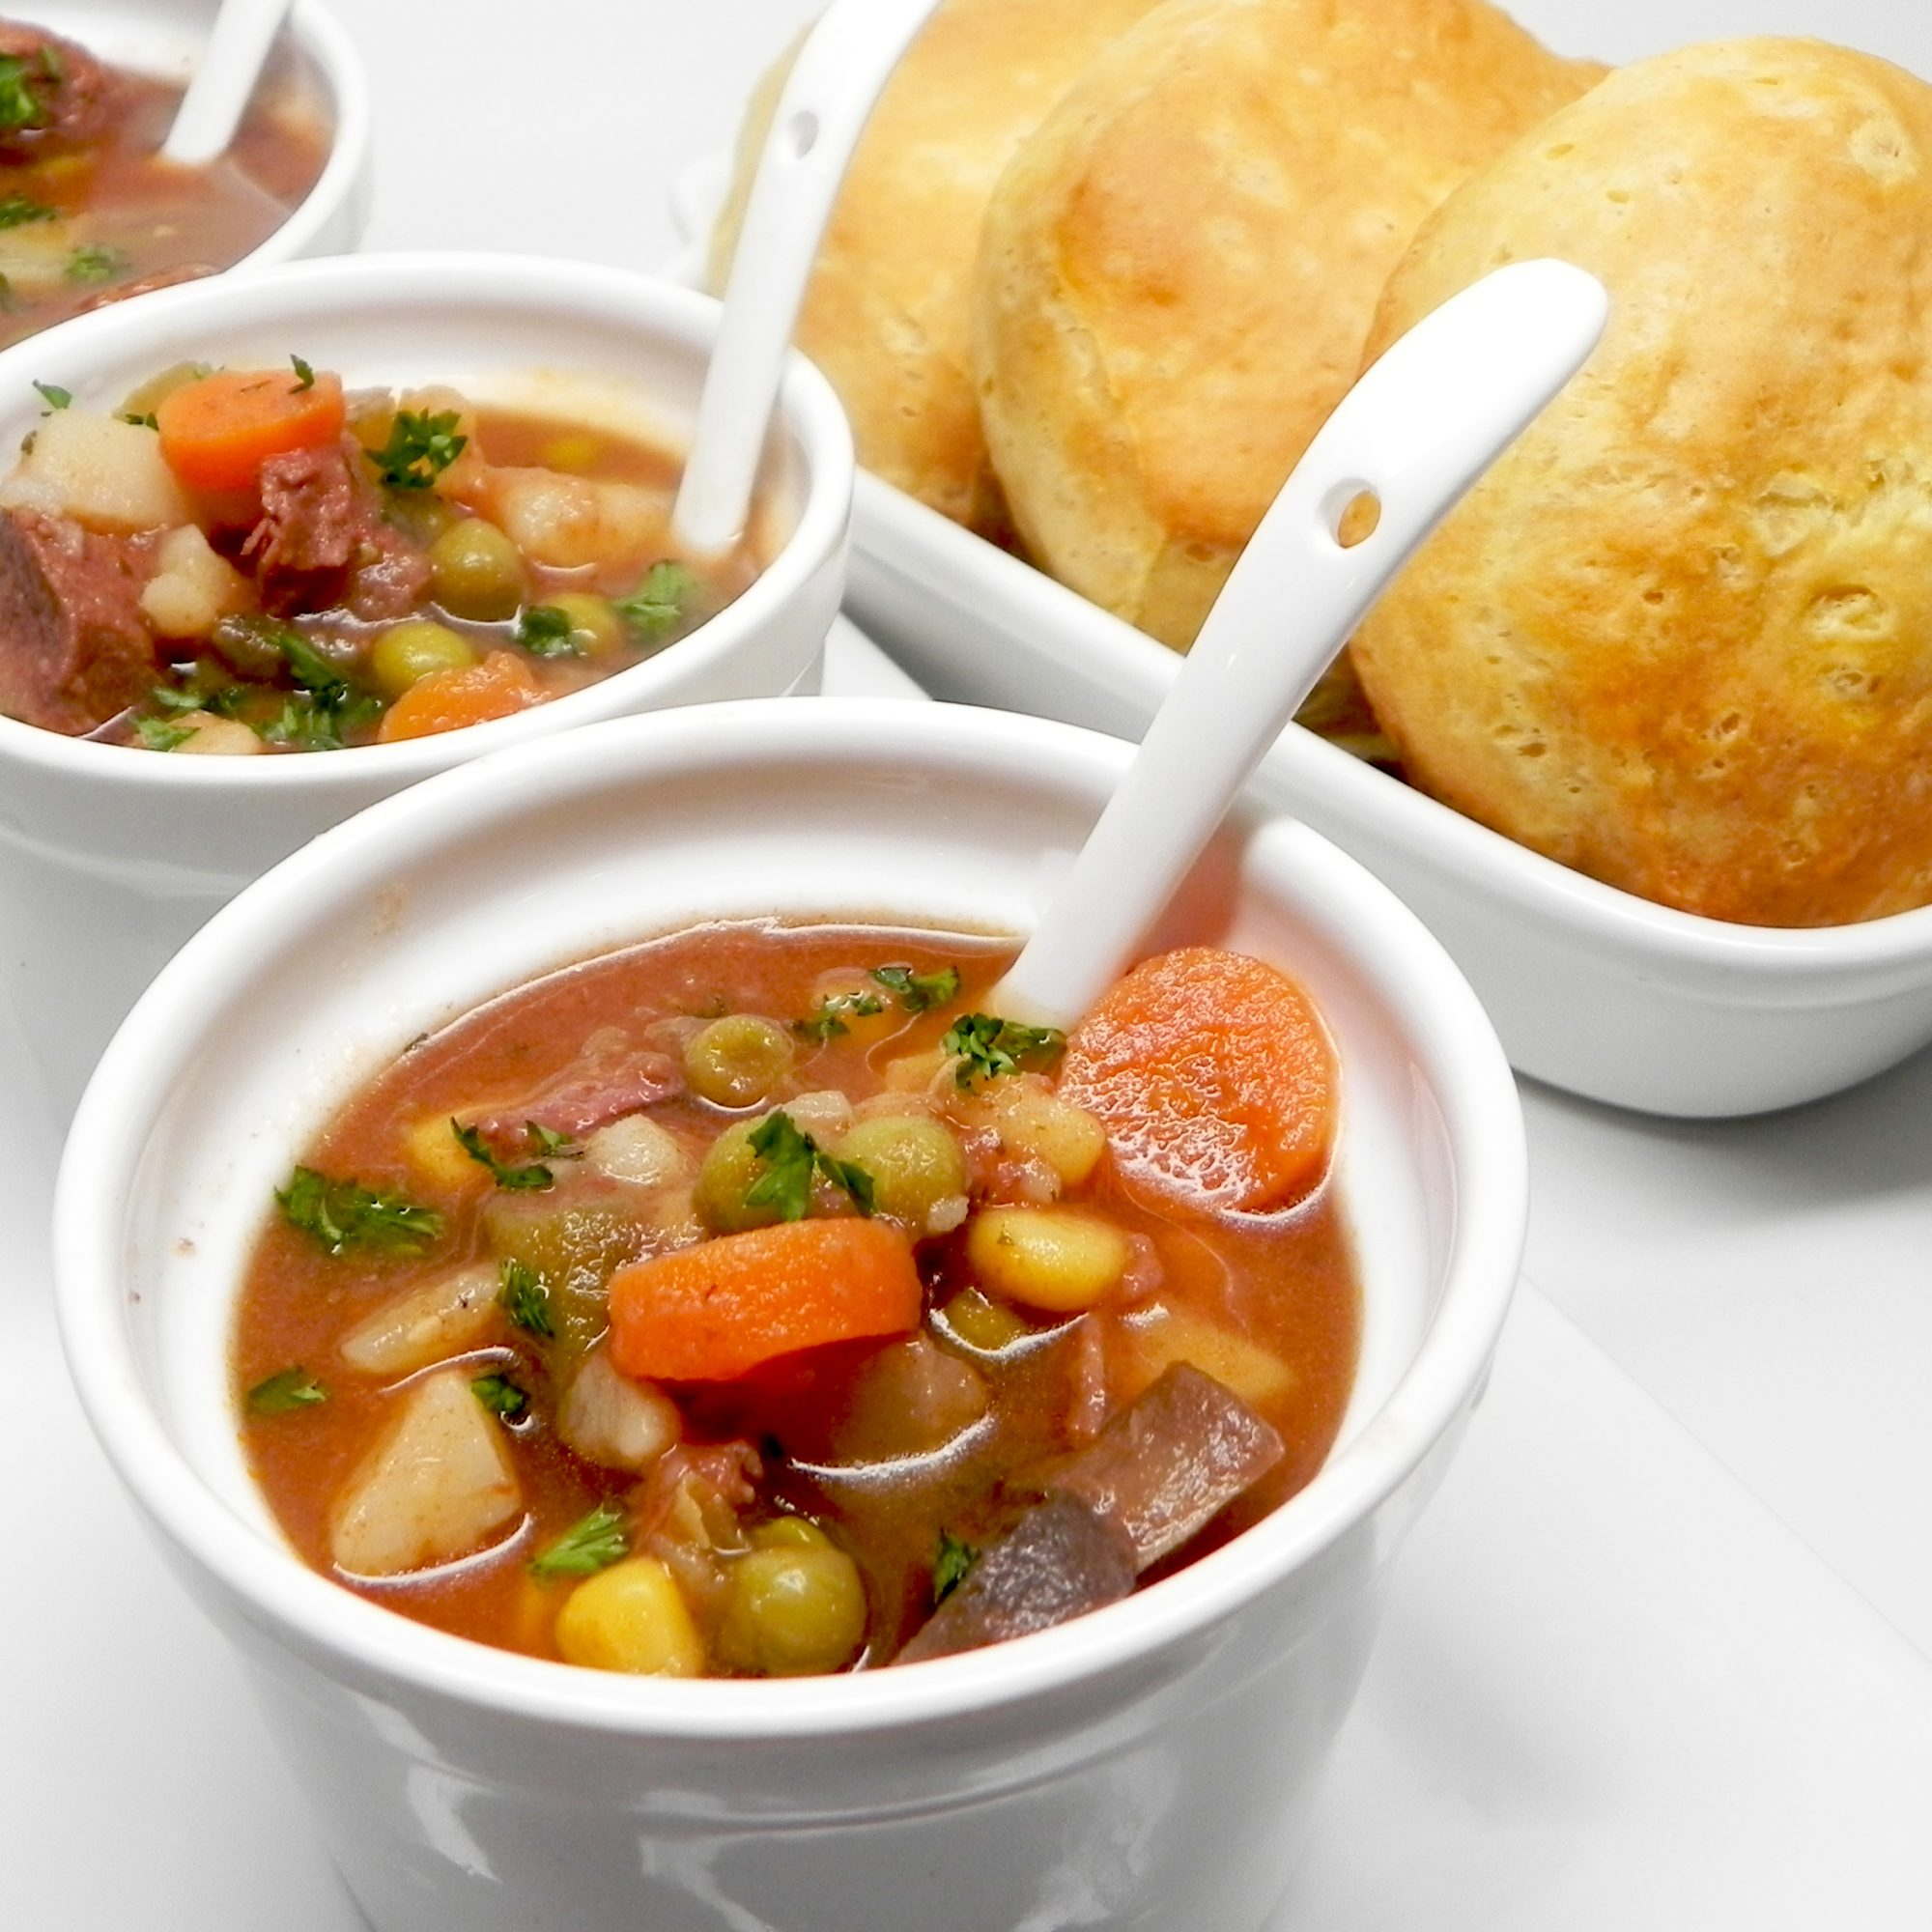 Prime Rib Stew in mini bowls with side of biscuits